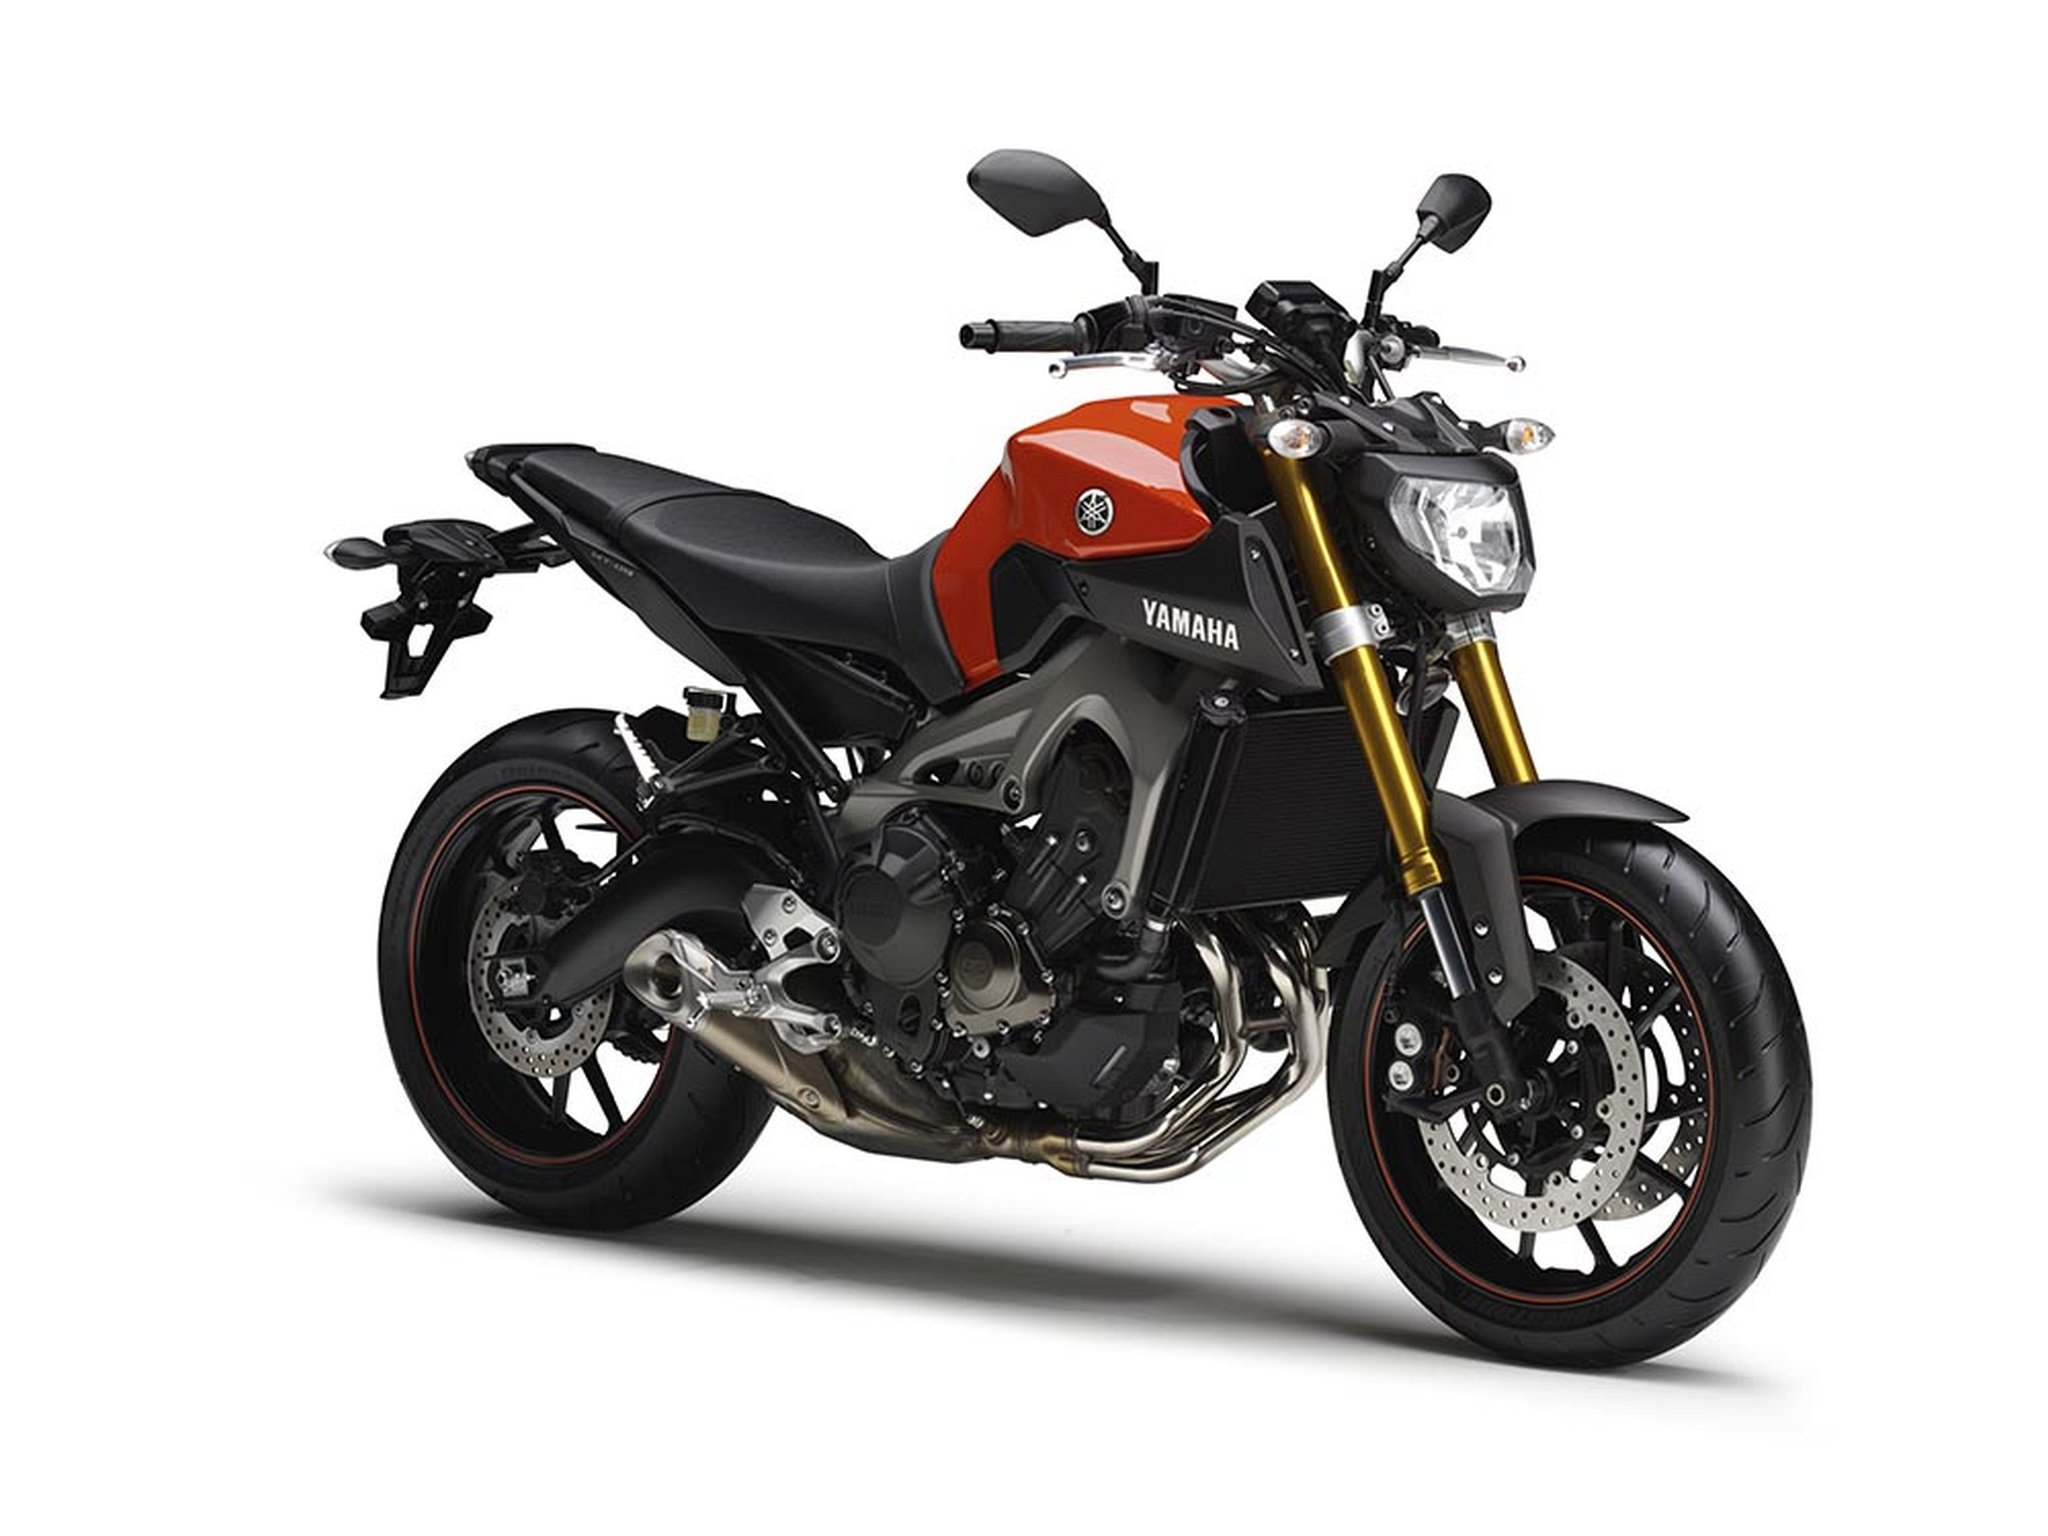 YAMAHA MT-09 ABS PARTS